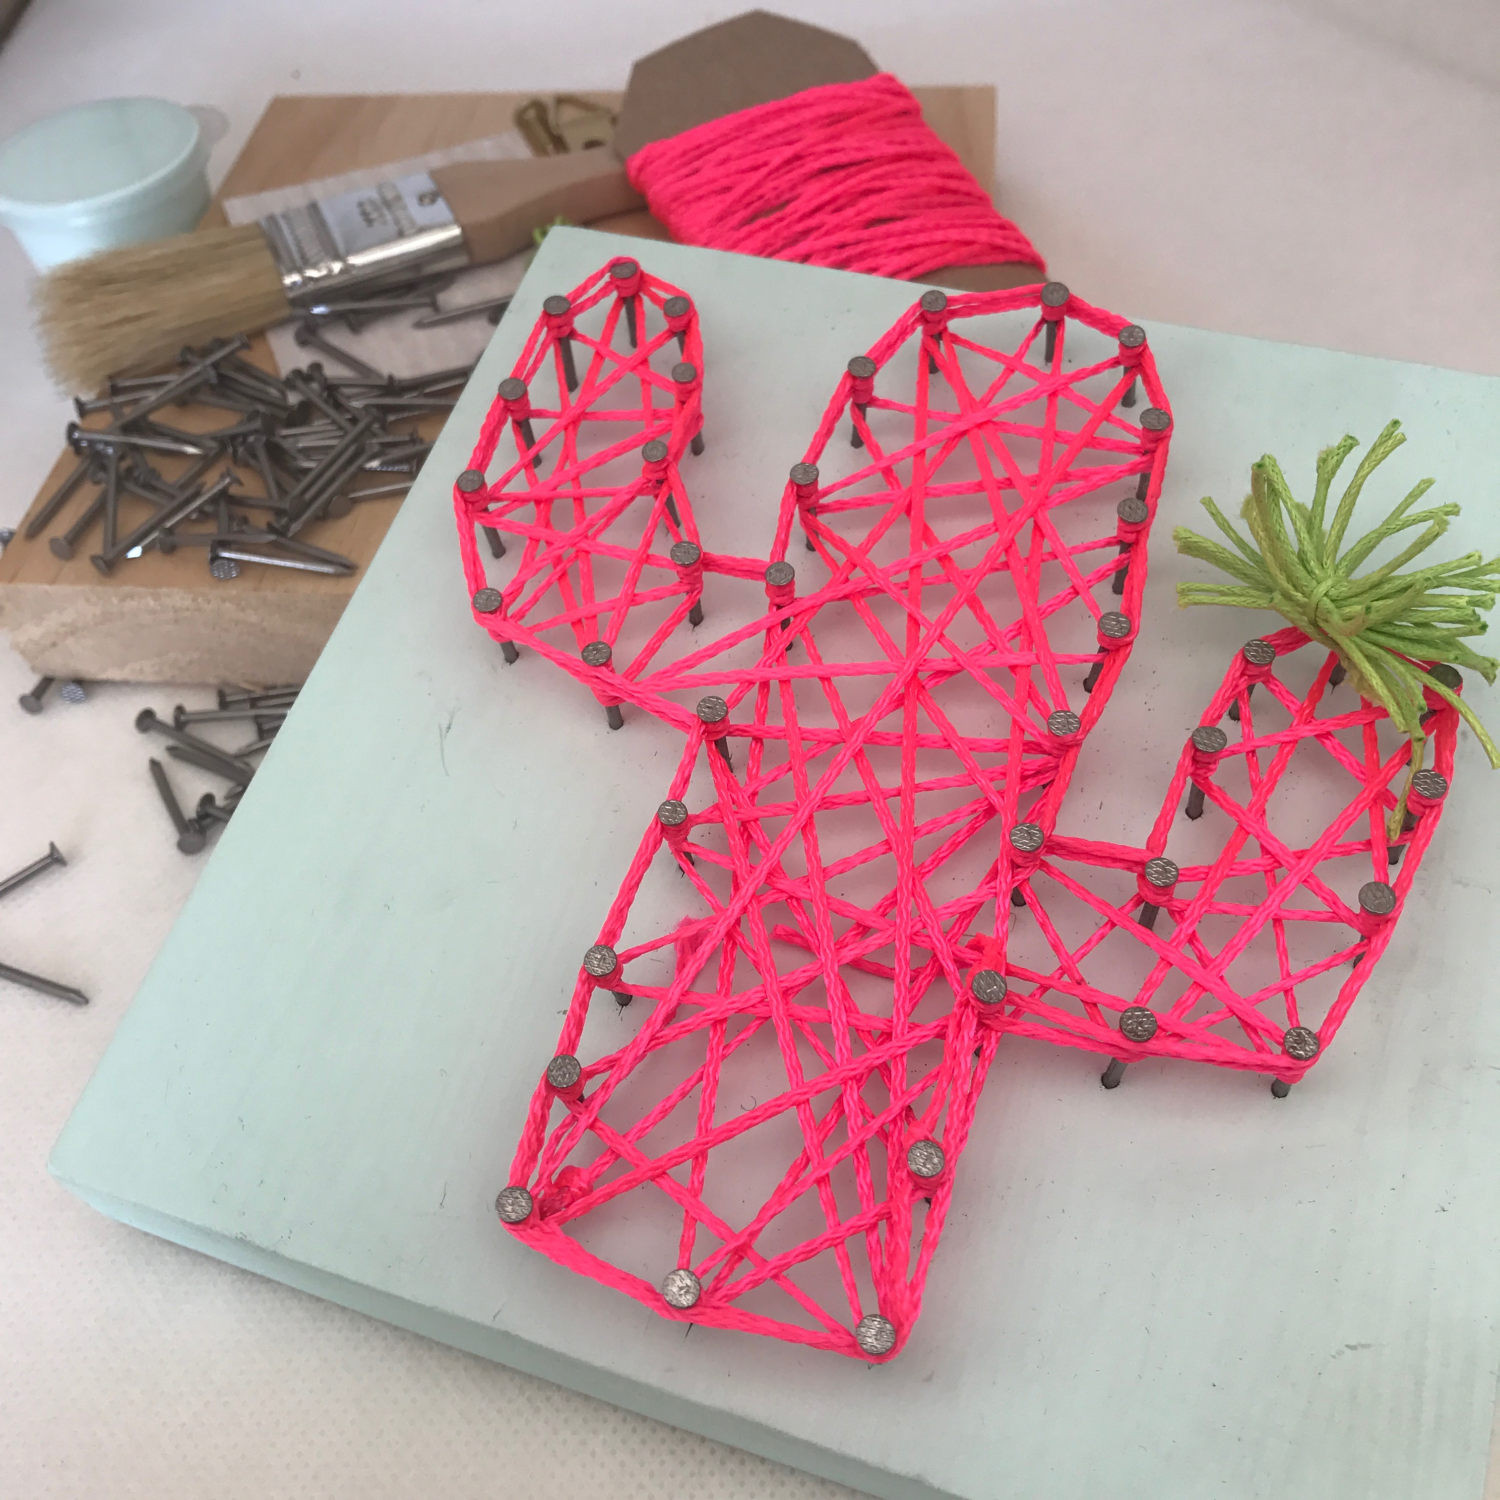 Best ideas about Adult Craft Kits . Save or Pin DIY String Art Kit Craft Kit Gift for Adults Gift for Now.